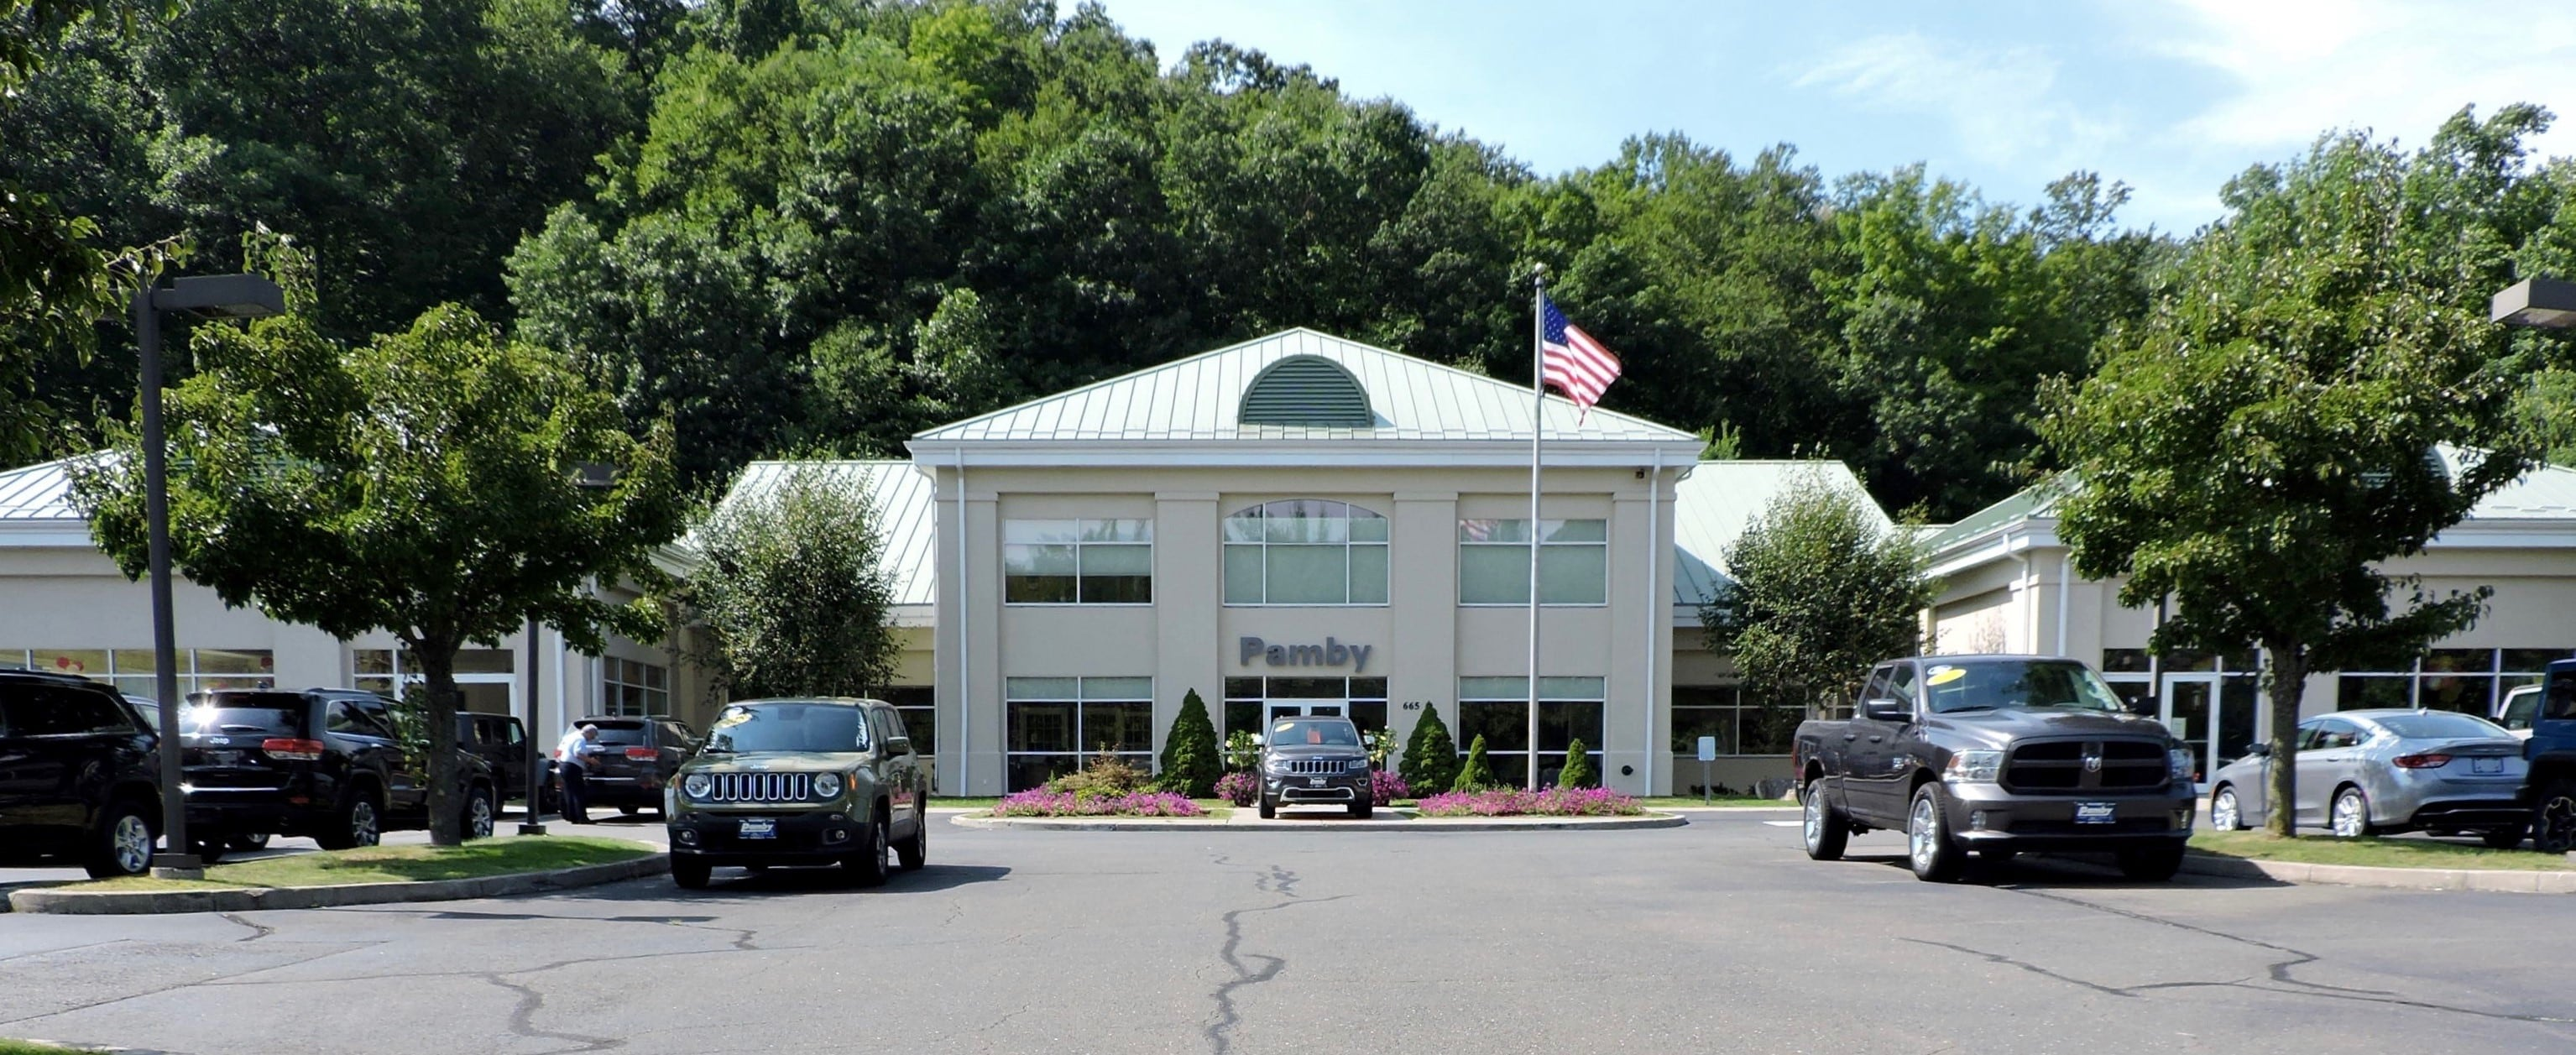 About pamby motors in ridgefield ct for Pamby motors ridgefield ct